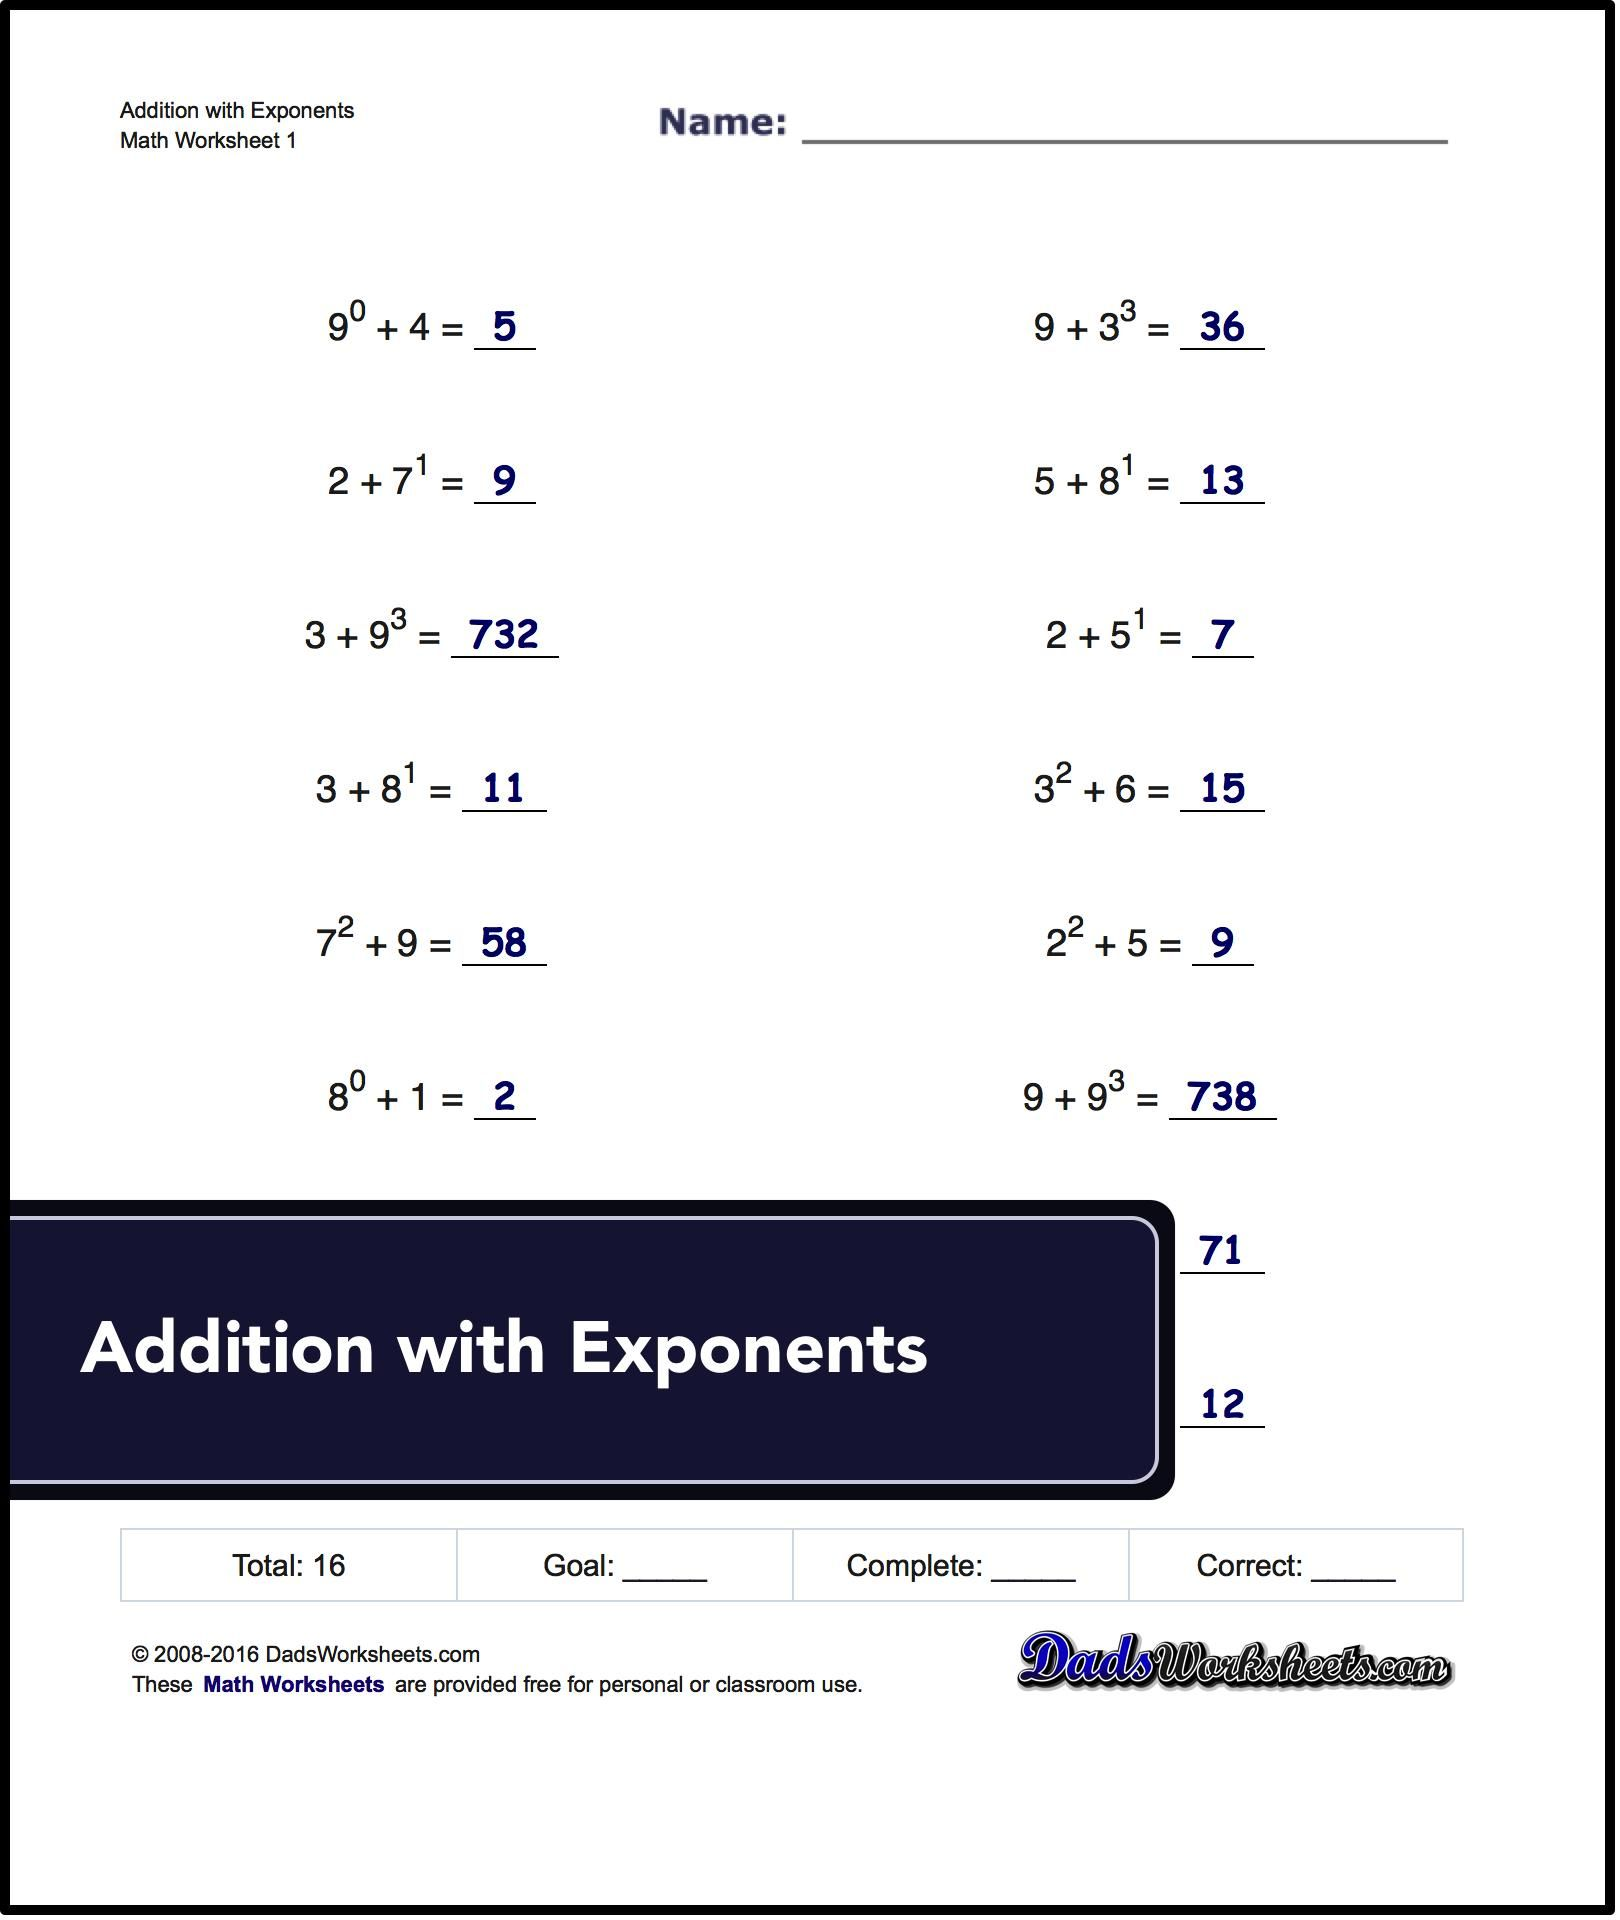 Worksheets Free Order Of Operations Worksheets adding exponents worksheets including simple problems where addition math free pemdas worksheets